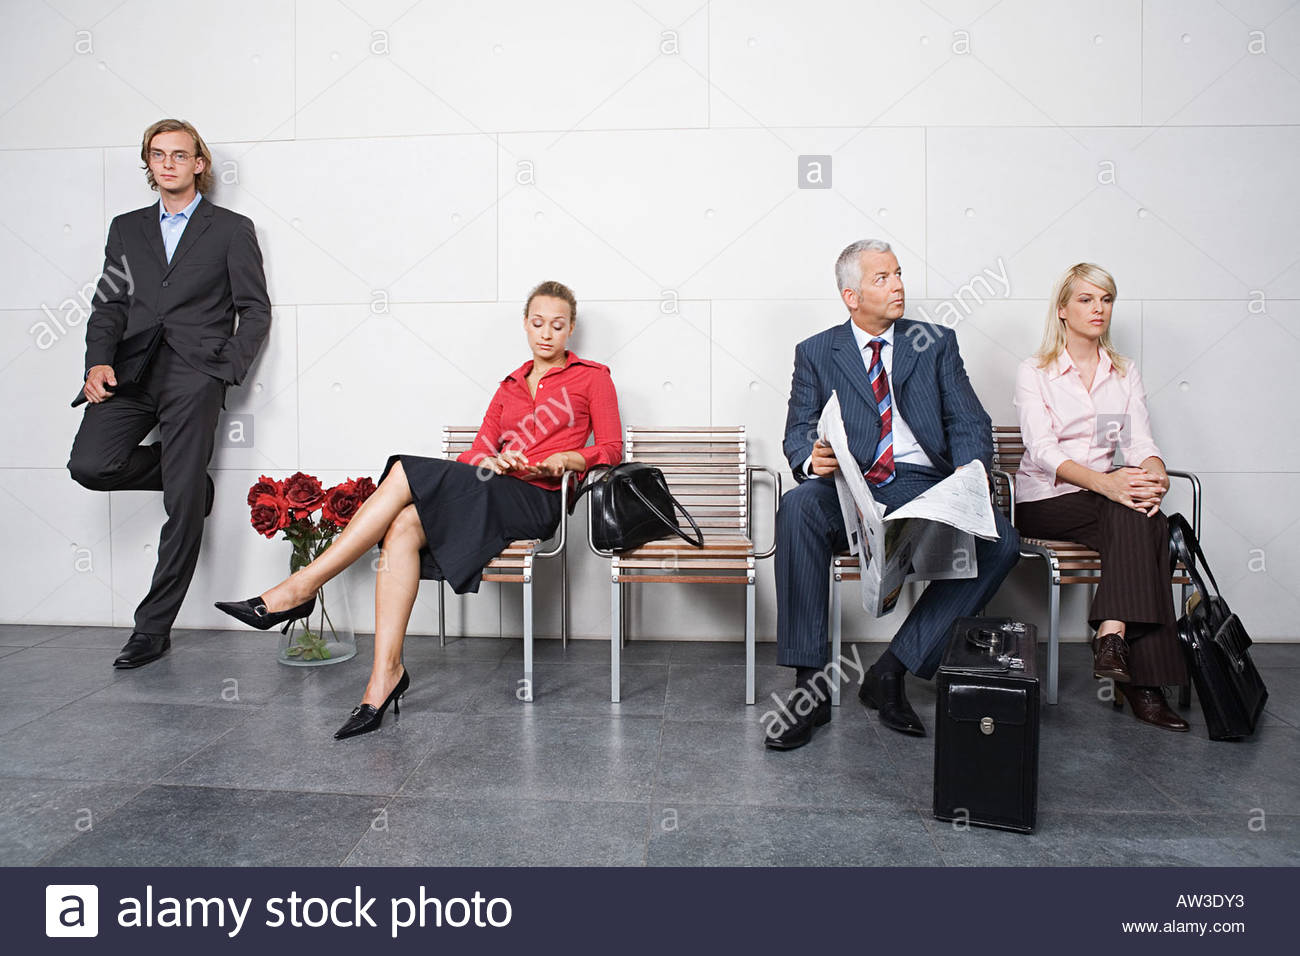 Candidates waiting for interview - Stock Image